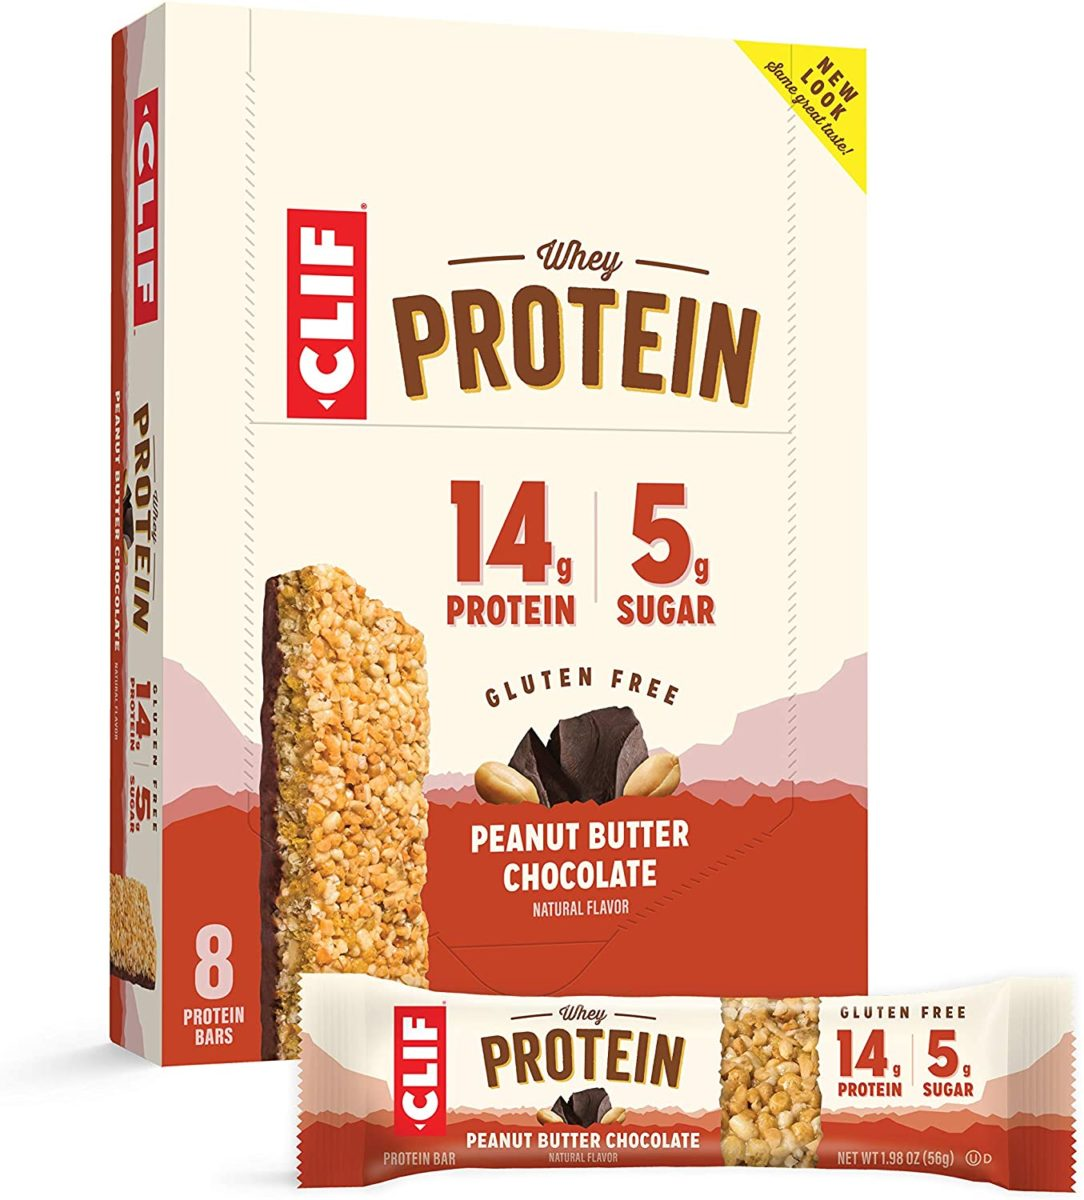 CLIF Whey Protein - Snack Bars - Peanut Butter & Chocolate Flavor